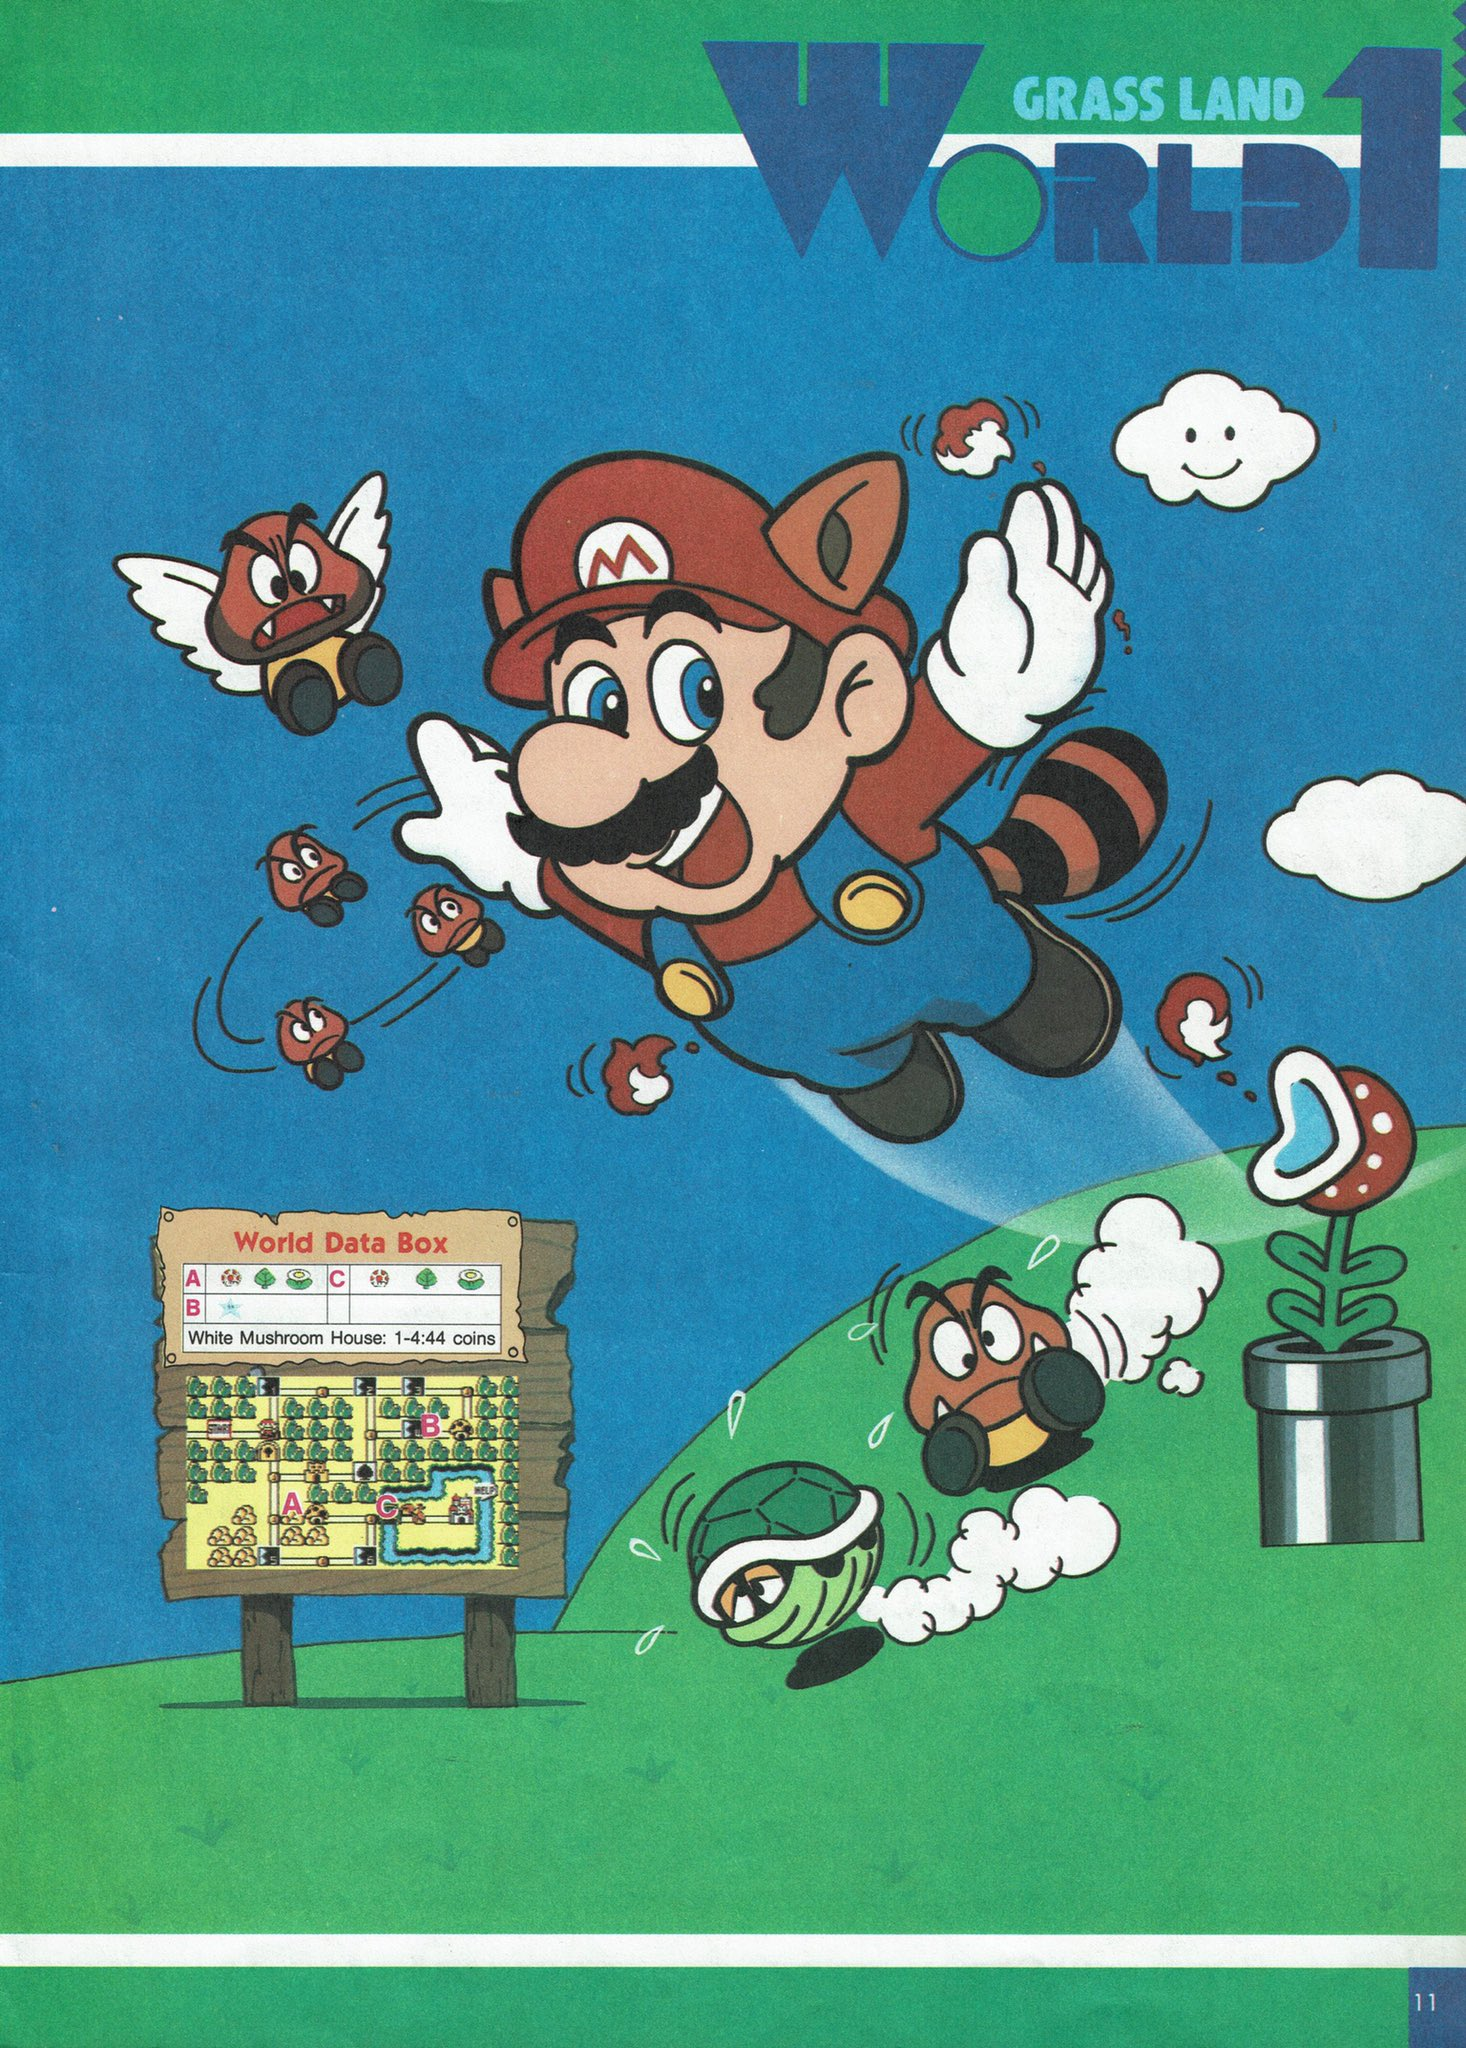 http://www.mariowiki.com/images/c/cc/Grass_Land_scene_SMB3.jpg